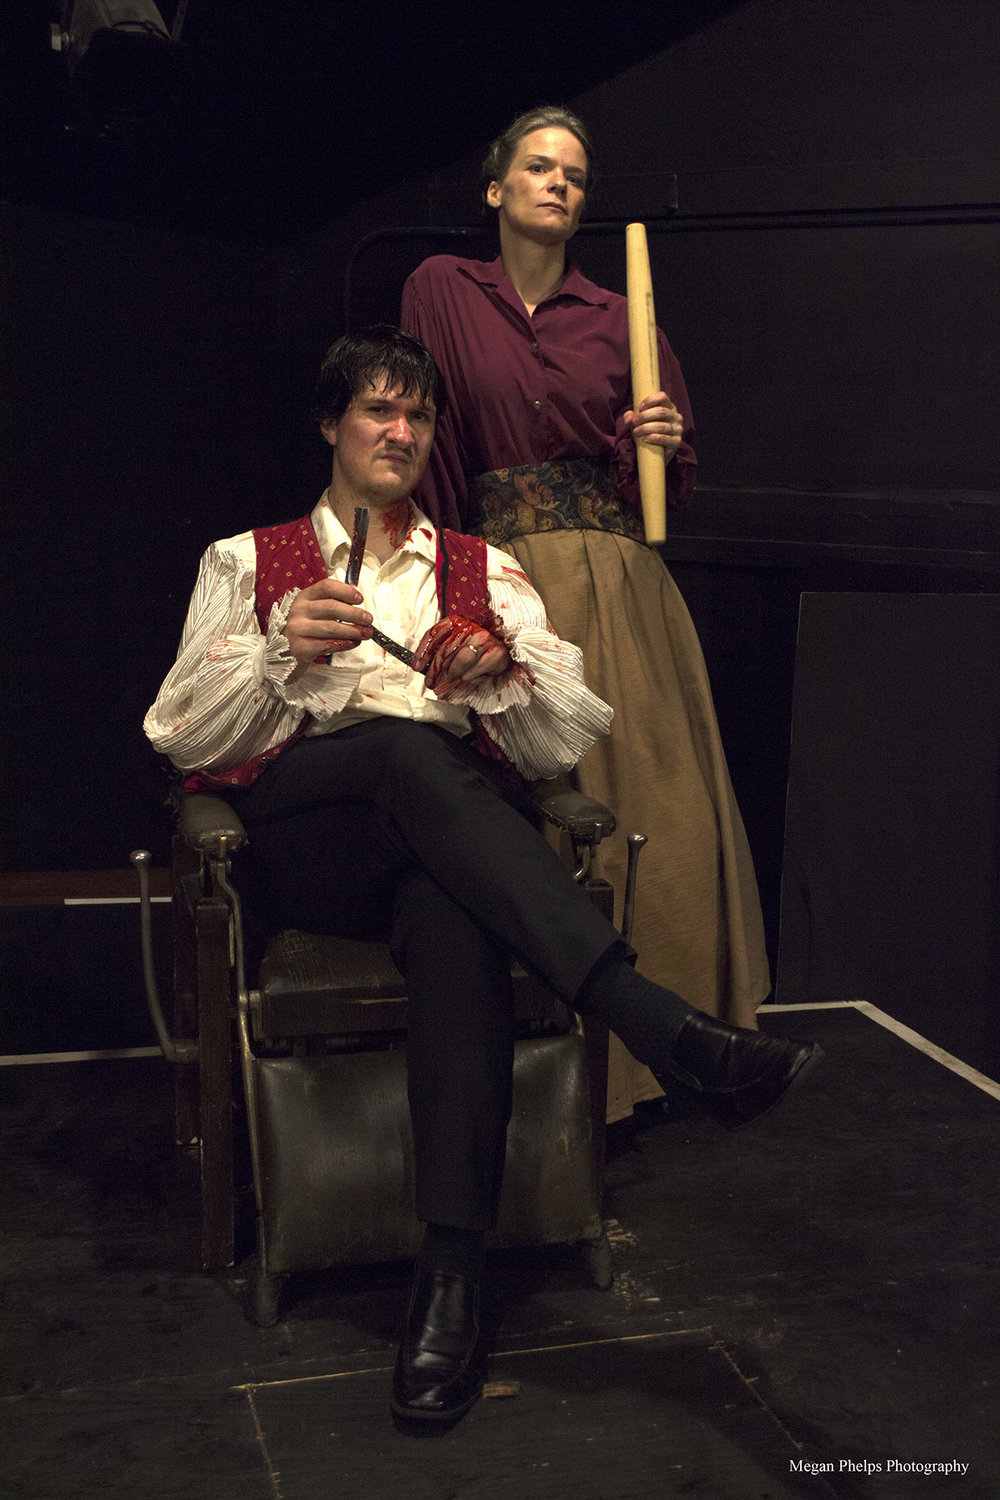 Jason Shealy as Sweeney Todd, with Eden Casteel as Mrs. Lovett.. Photo by Seth Jacobson Photography.